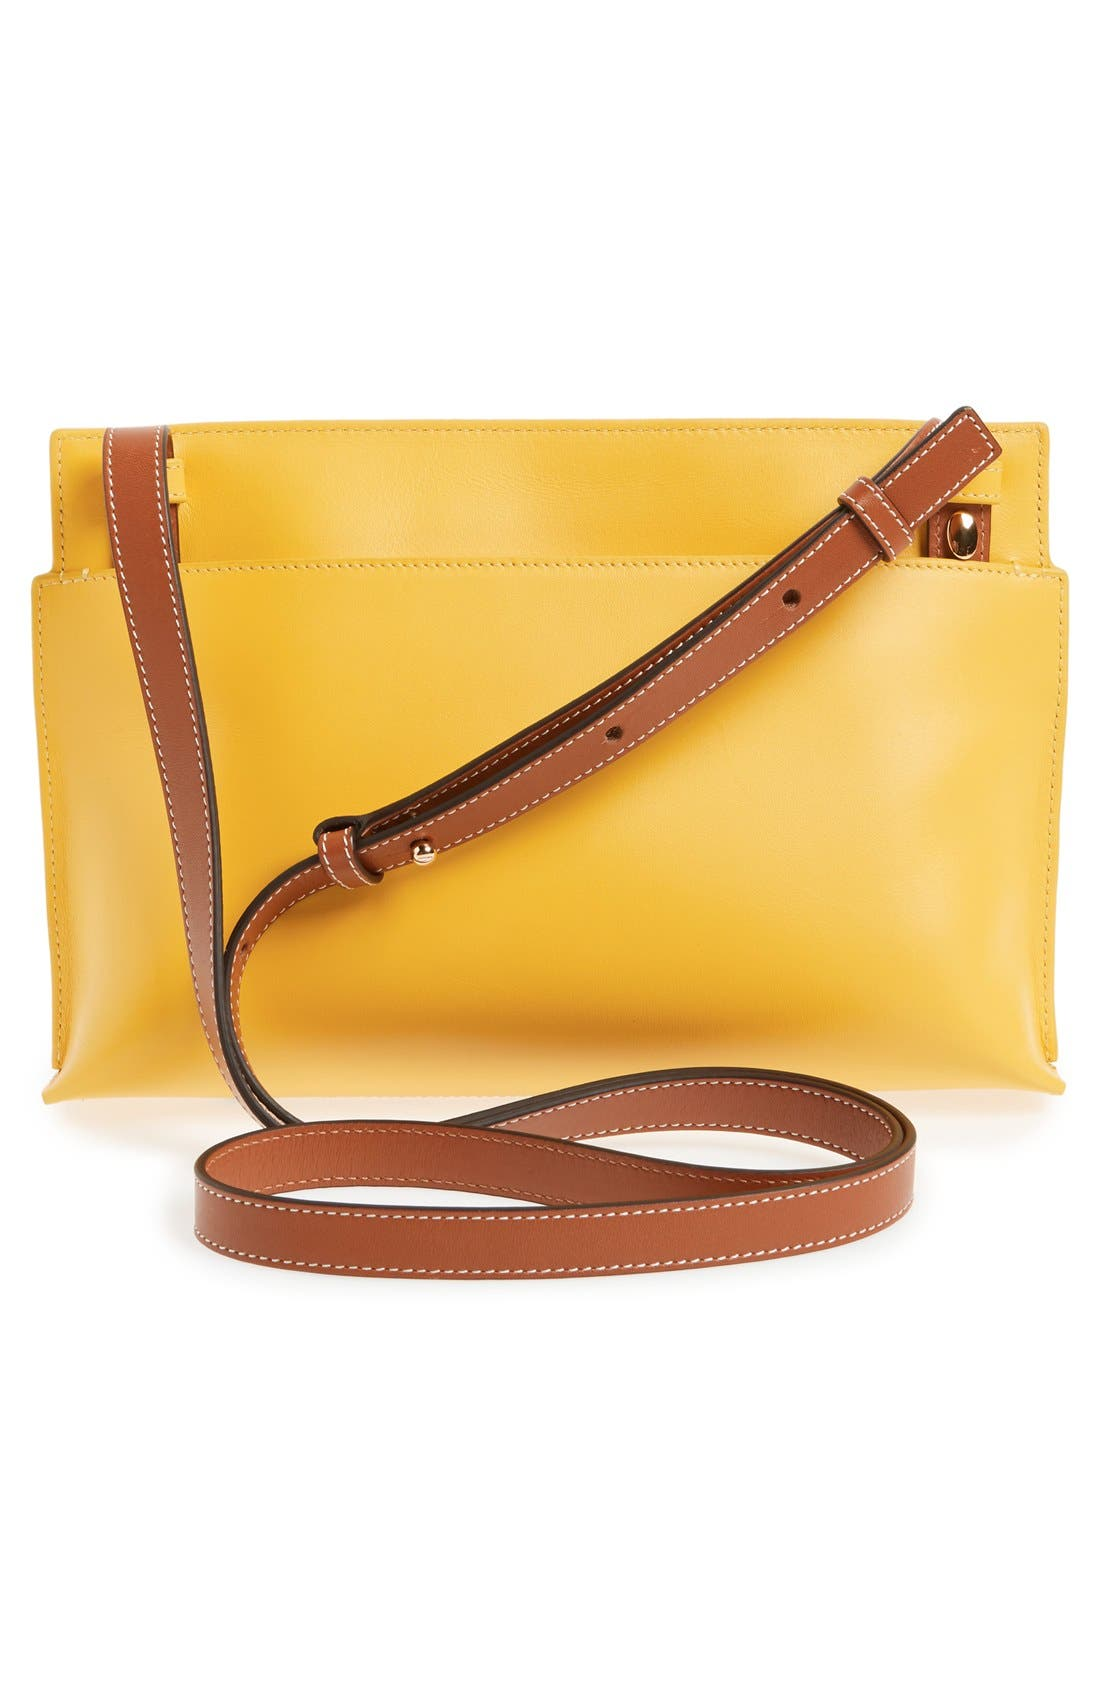 Alternate Image 3  - Loewe 'Fiore' Marquetry Calfskin Leather Crossbody Clutch